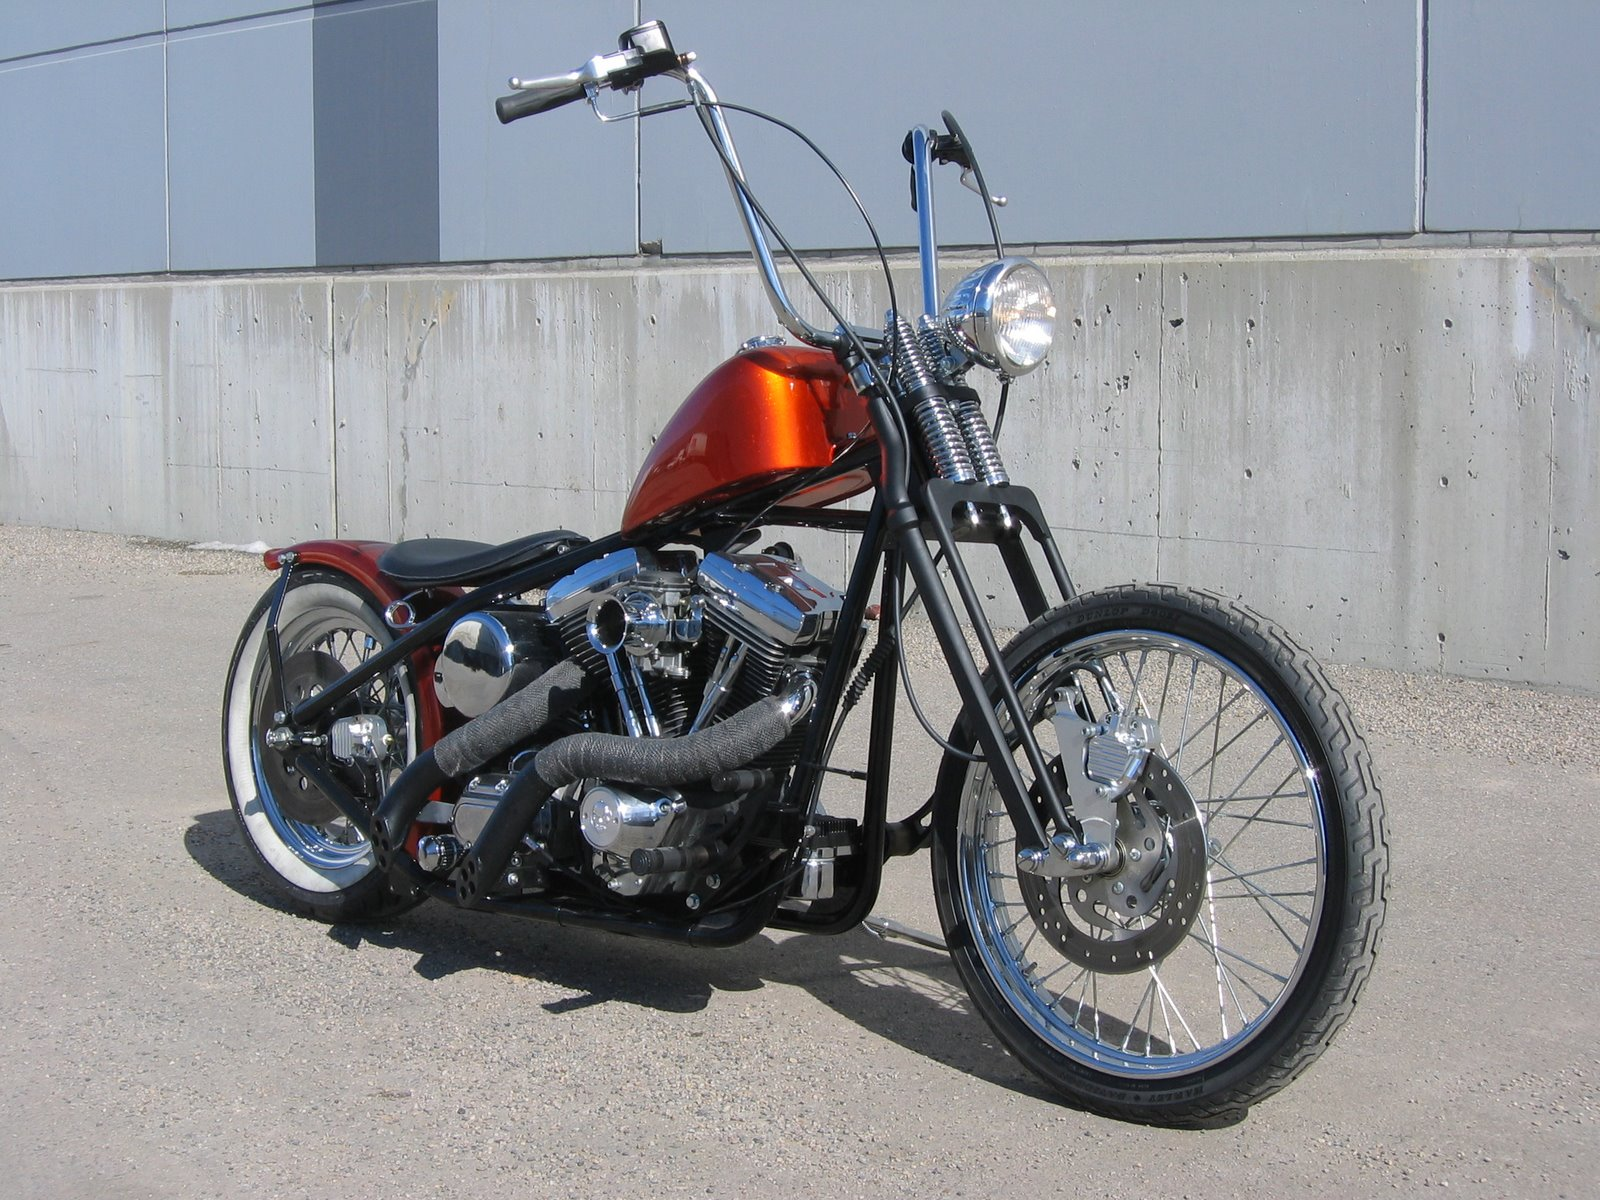 Harley Davidson With An S S Super Stock Engine